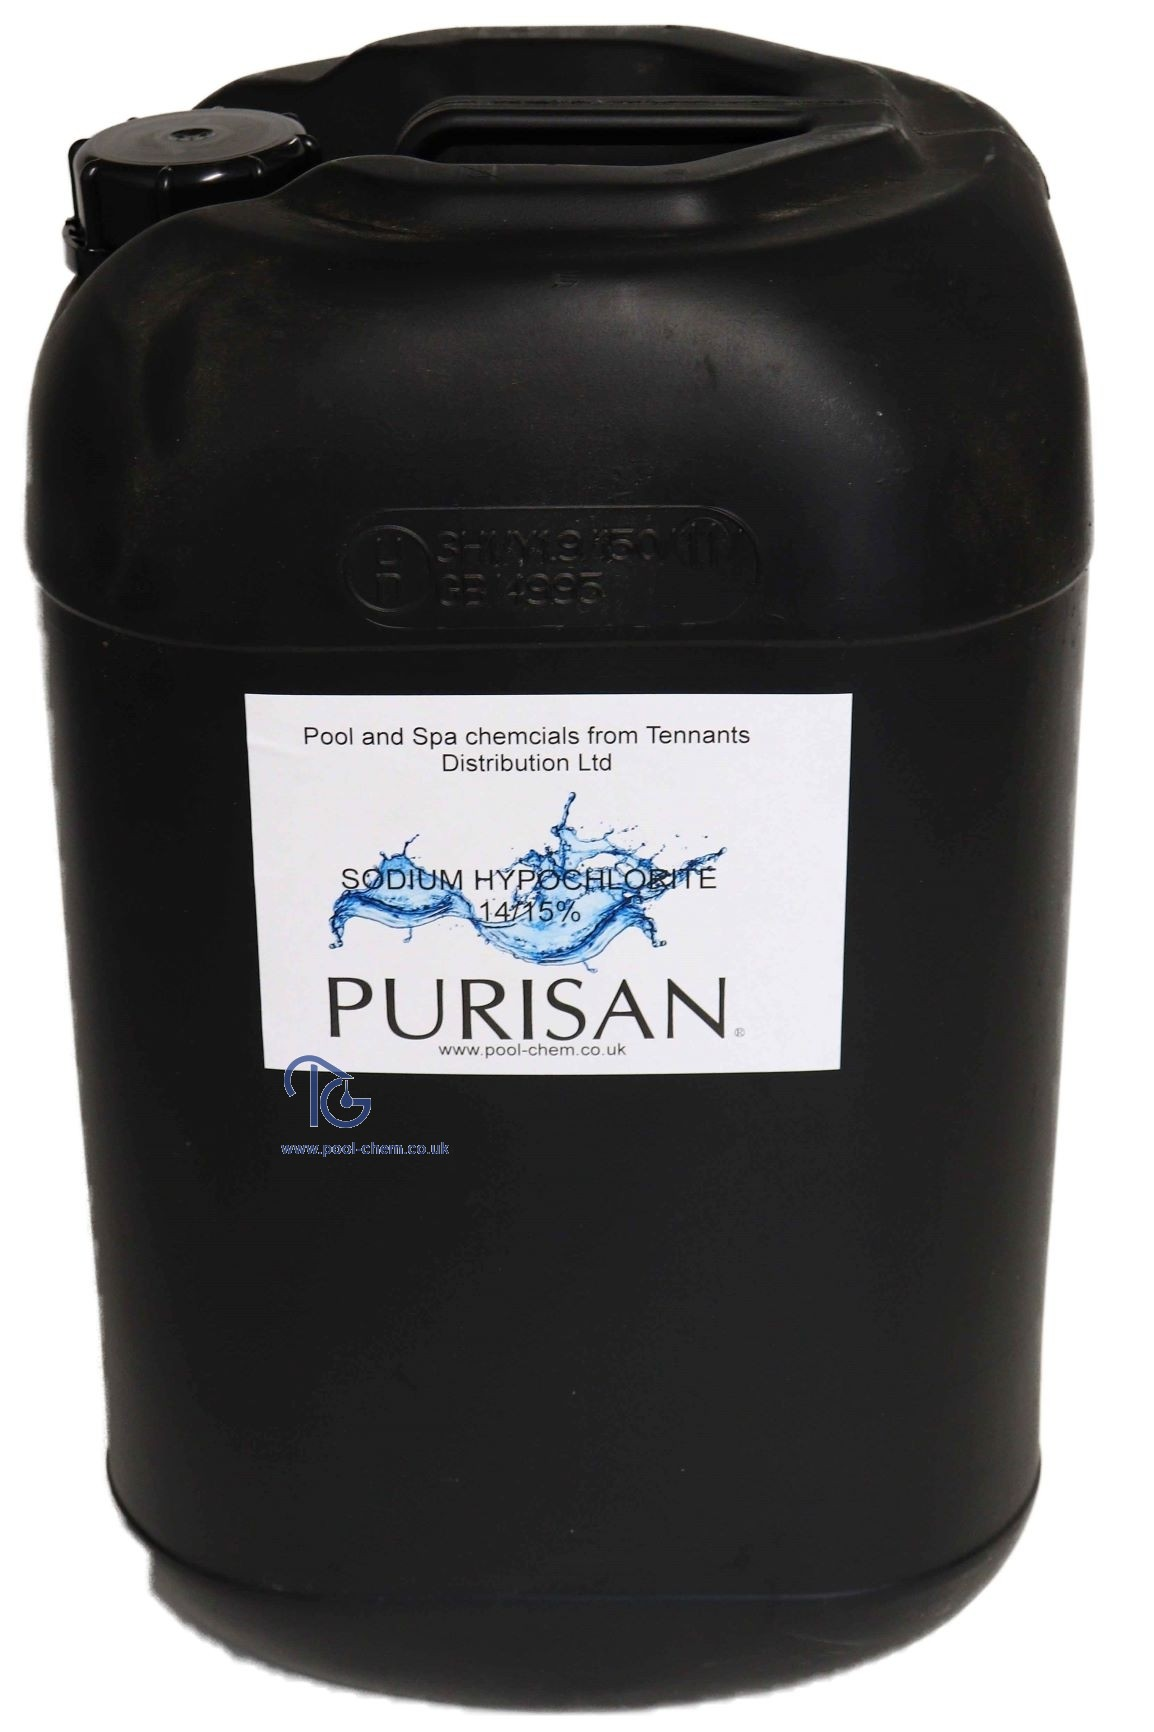 20ltr Purisan® Liquid Chlorine 14-15%  (Sodium Hypochlorite) - Non-Returnable Polican* - COLLECTION ONLY